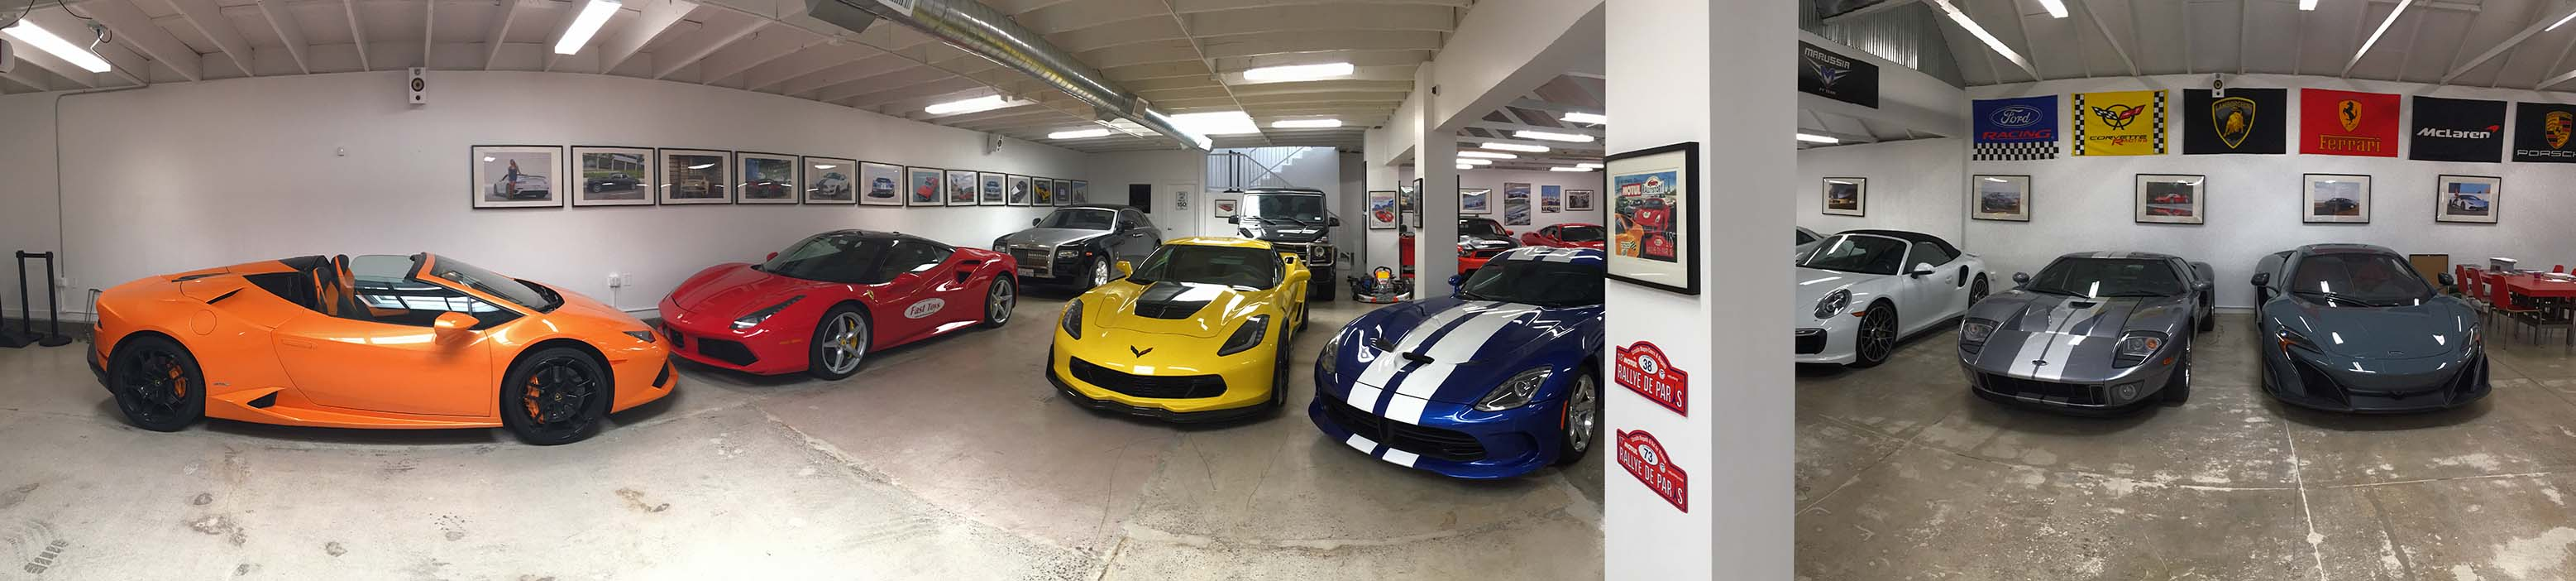 fast toys exotic car club sets the industry standard for all driving enthusiasts newswire. Black Bedroom Furniture Sets. Home Design Ideas